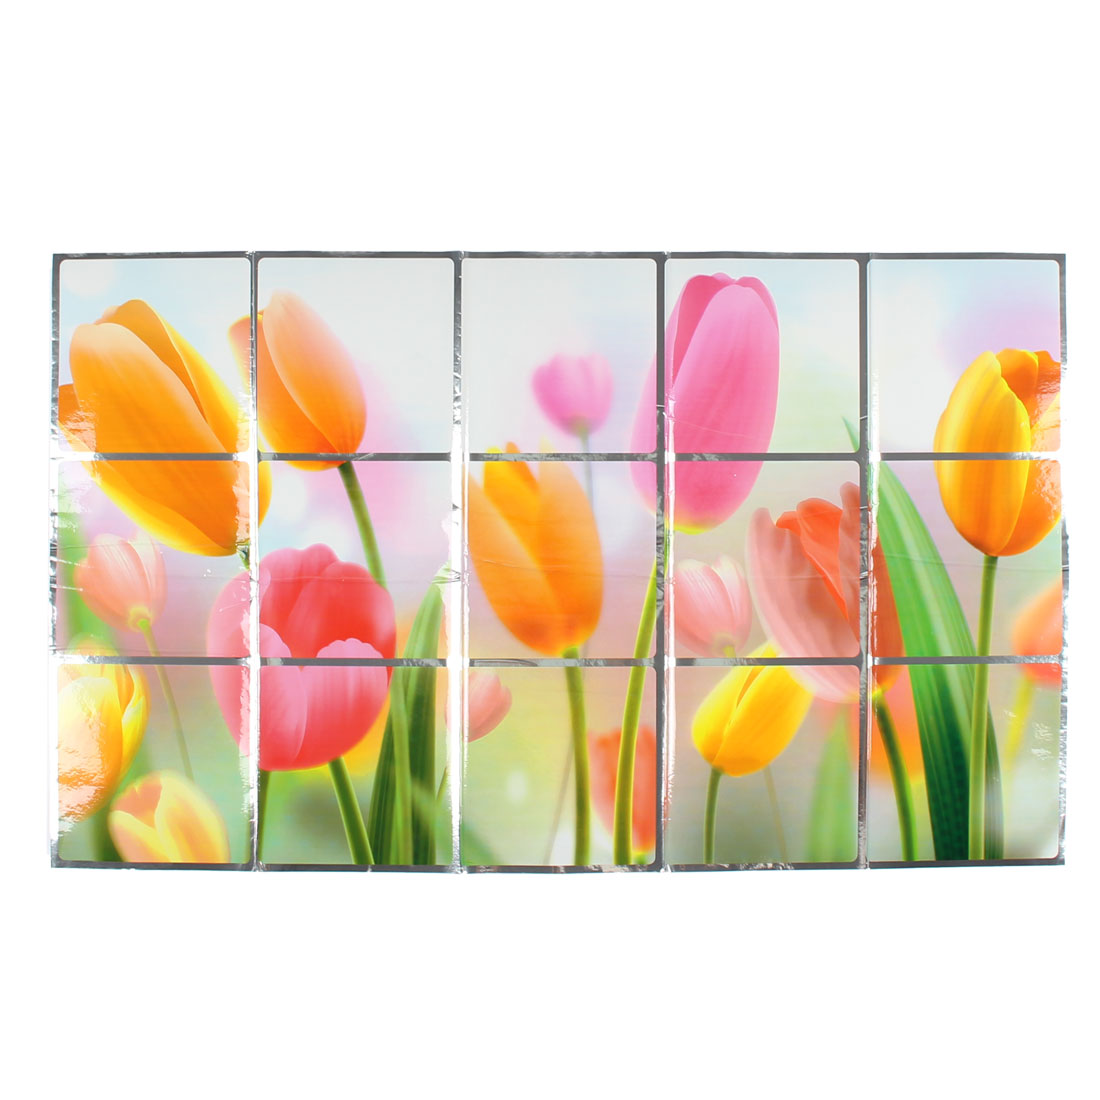 Kitchen Tulip Pattern Removable Heat Resistant Oilproof Wall Window Sticker 75 x 45cm